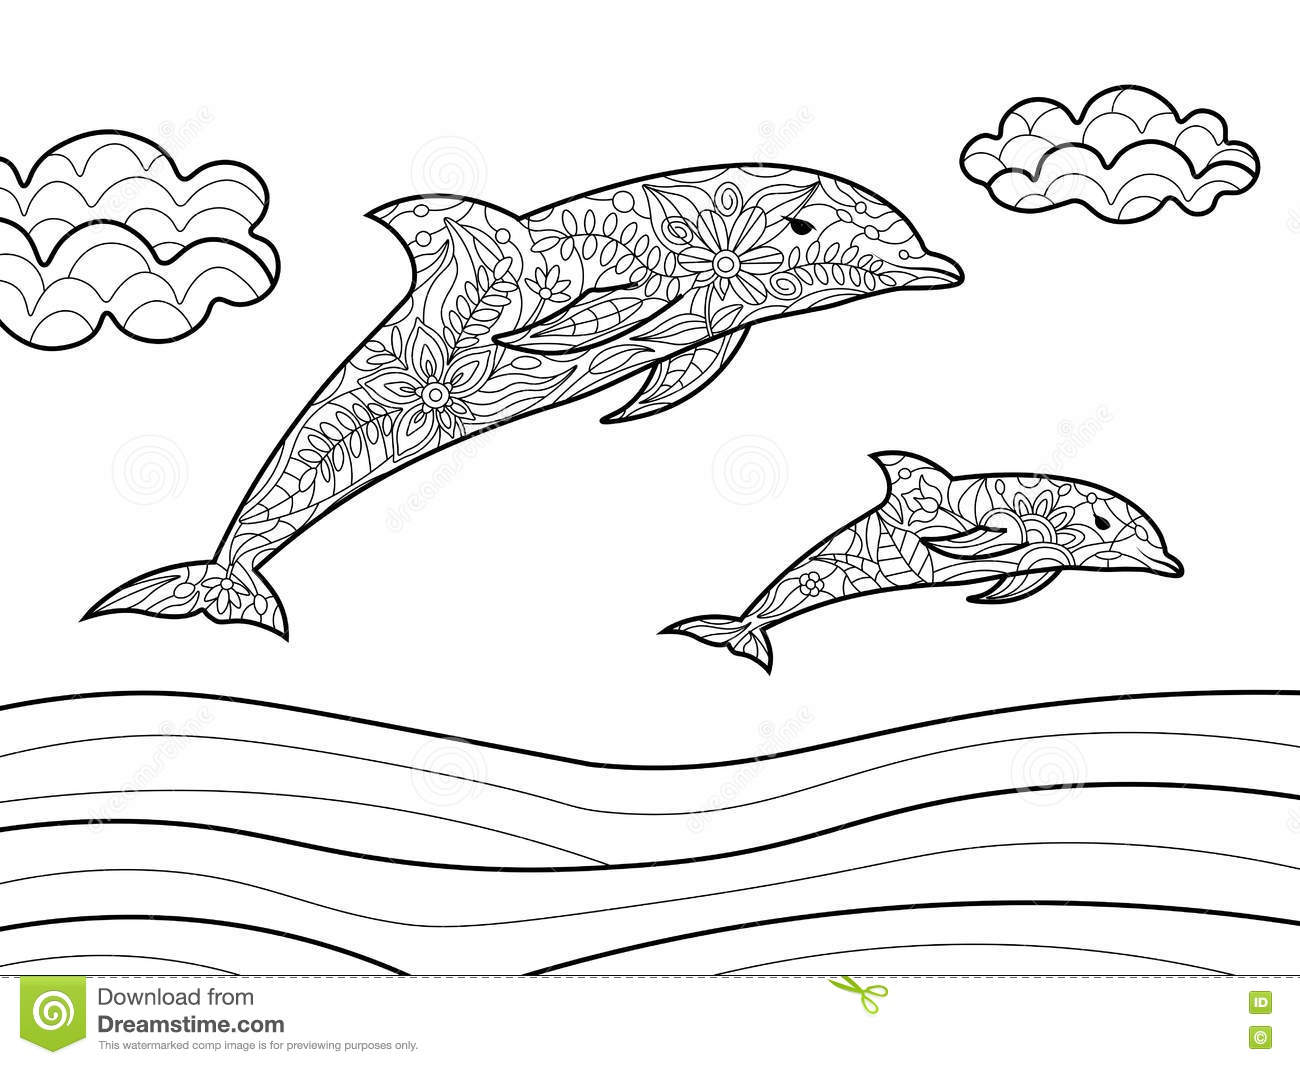 royalty free vector download dolphins coloring book - Dolphin Coloring Book